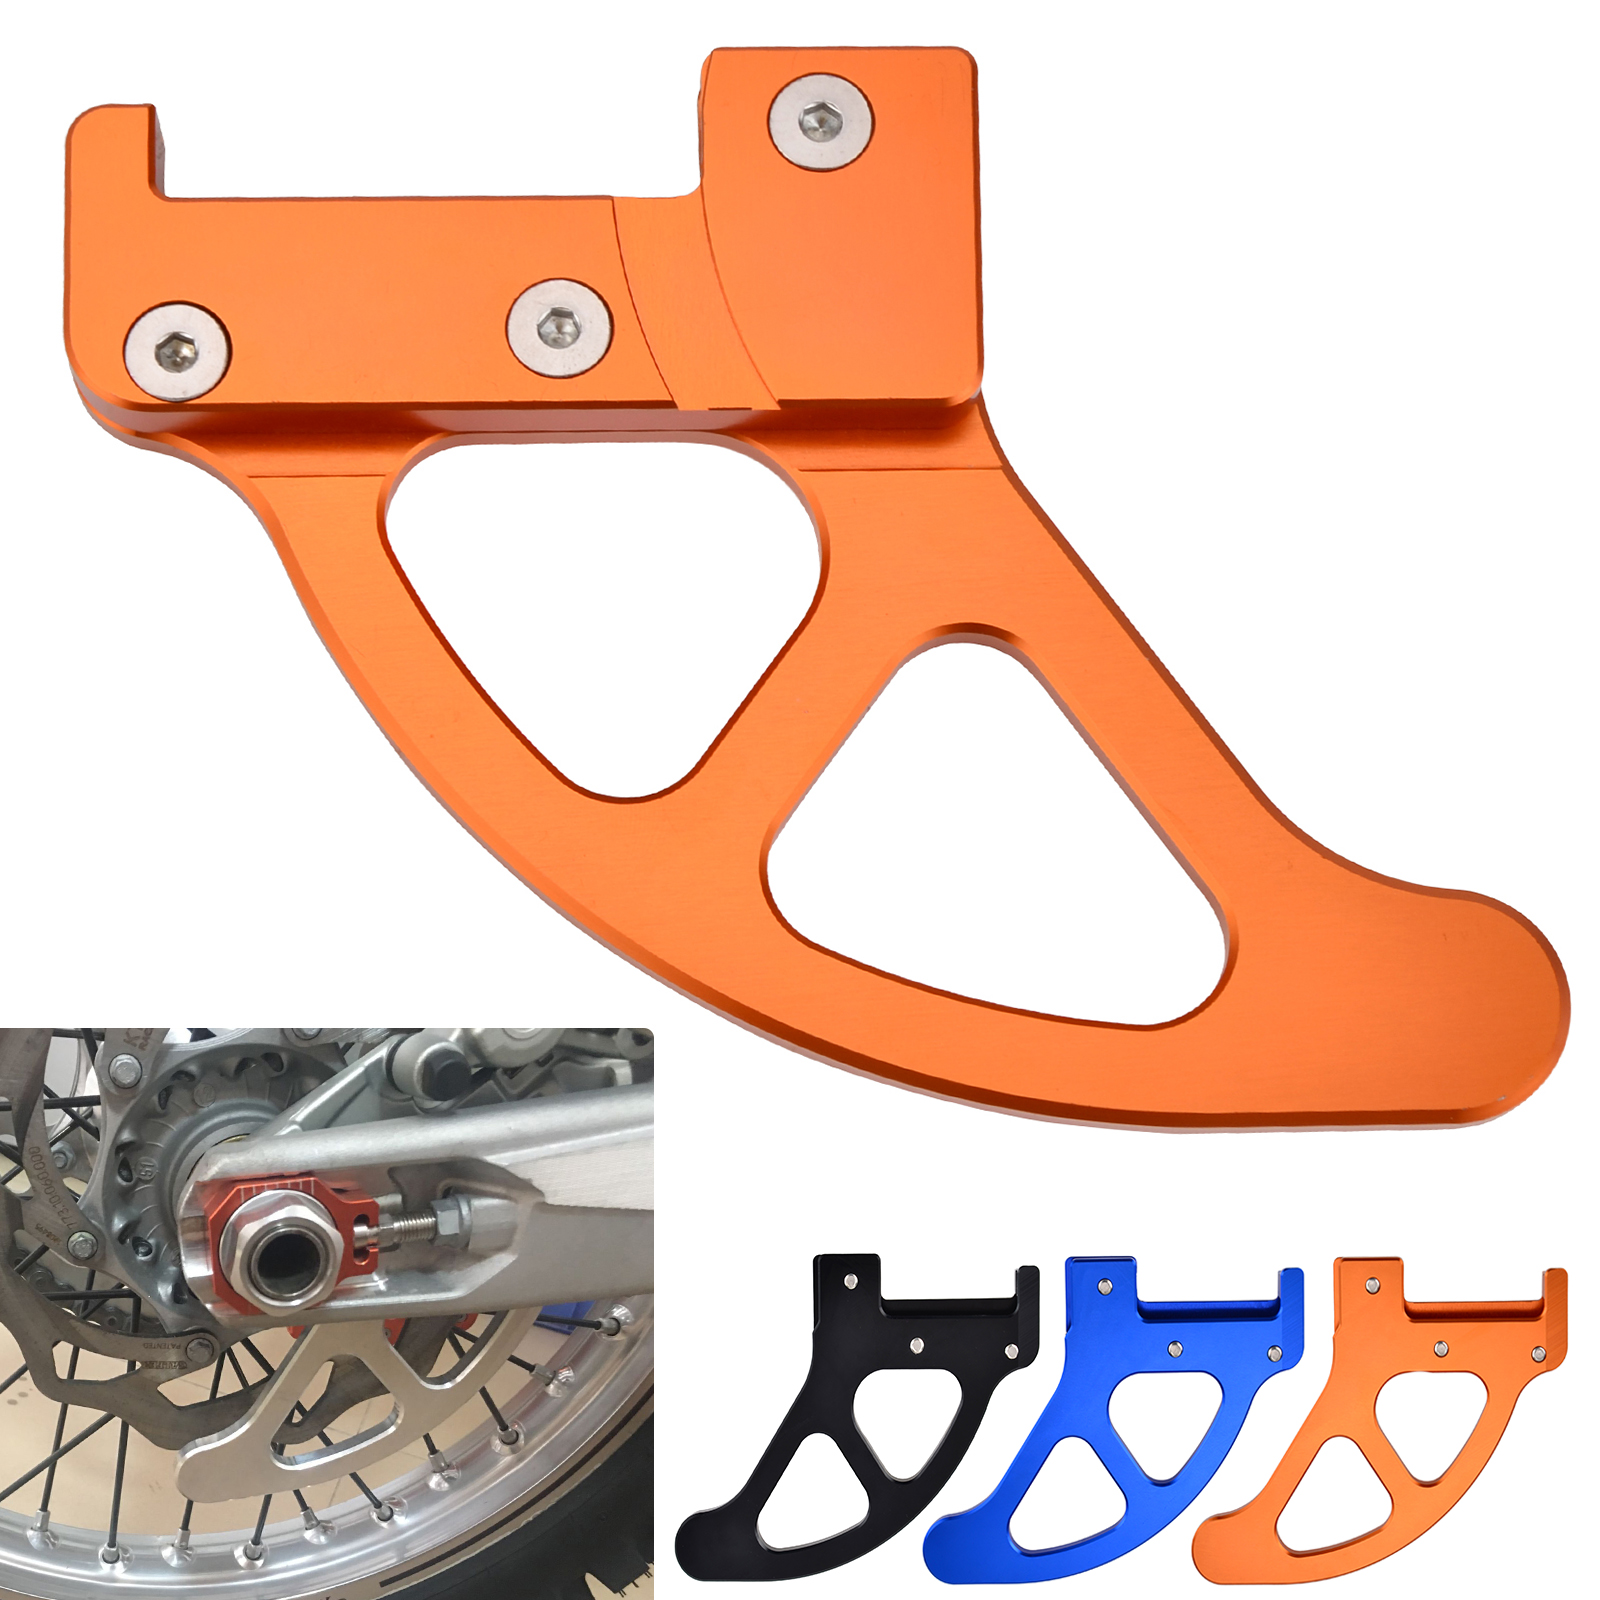 NICECNC Rear Brake Disc Guard Protector For KTM 125 200 250 300 350 400 450 525 530 EXC EXCF SX SXF XC XCF XCW Husqvarna 125-501 right left sides wp fork leg shoe guard protector cover for ktm 125 200 250 300 350 400 450 500 exc sx sxf xc xcf excf excw xcfw